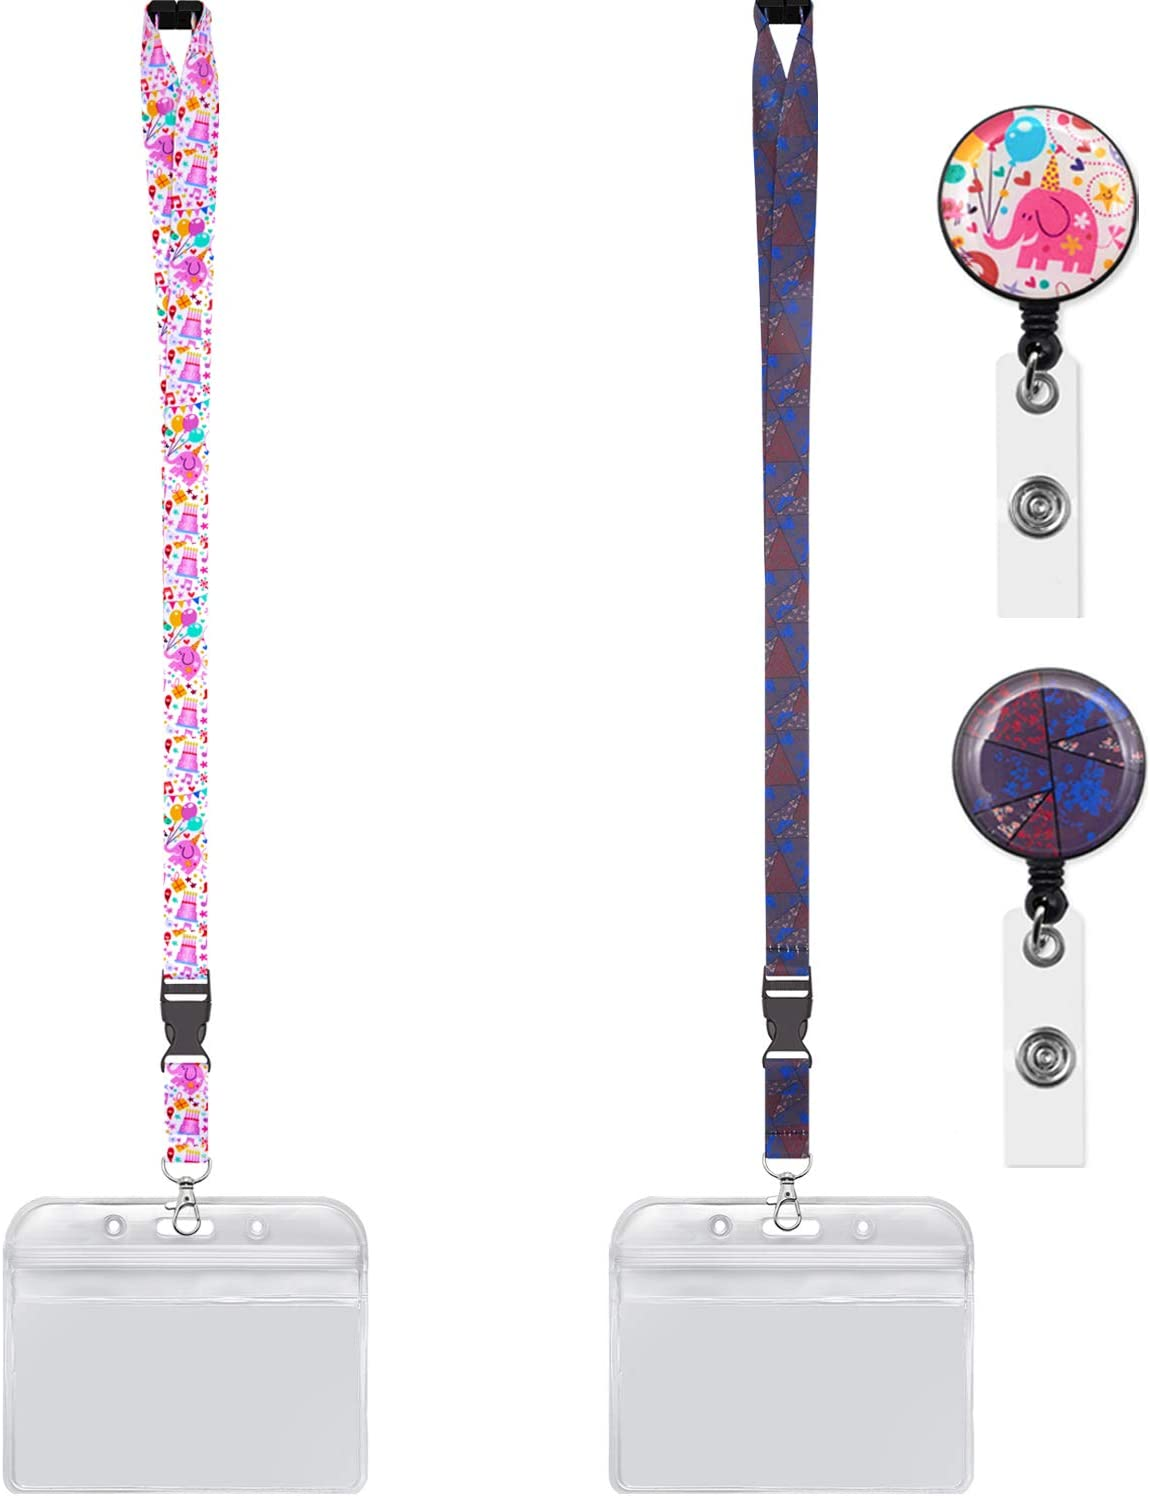 YOUOWO 2 Pack Lanyard with id Badges Holder and Badge Reel Retractable Horizontal ID Holder Cruise Lanyards for Ship Card Breakaway Safety Pink Elephant Lanyards Wide 0.79inch